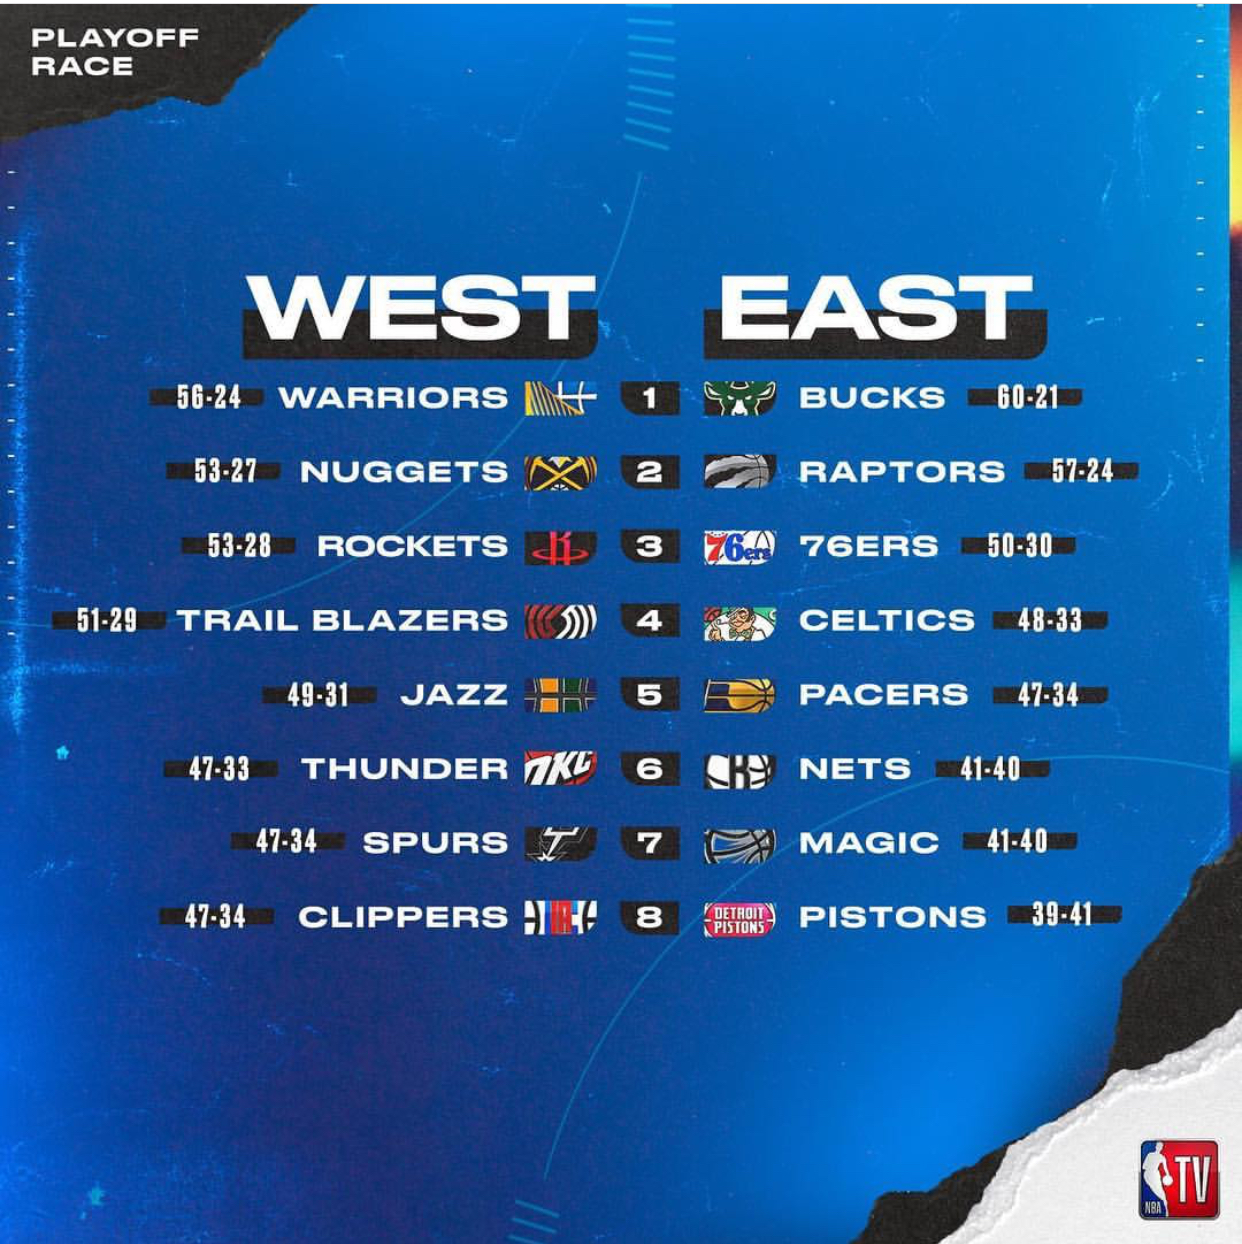 The NBA playoffs are set. Photo from NBA Instagram account